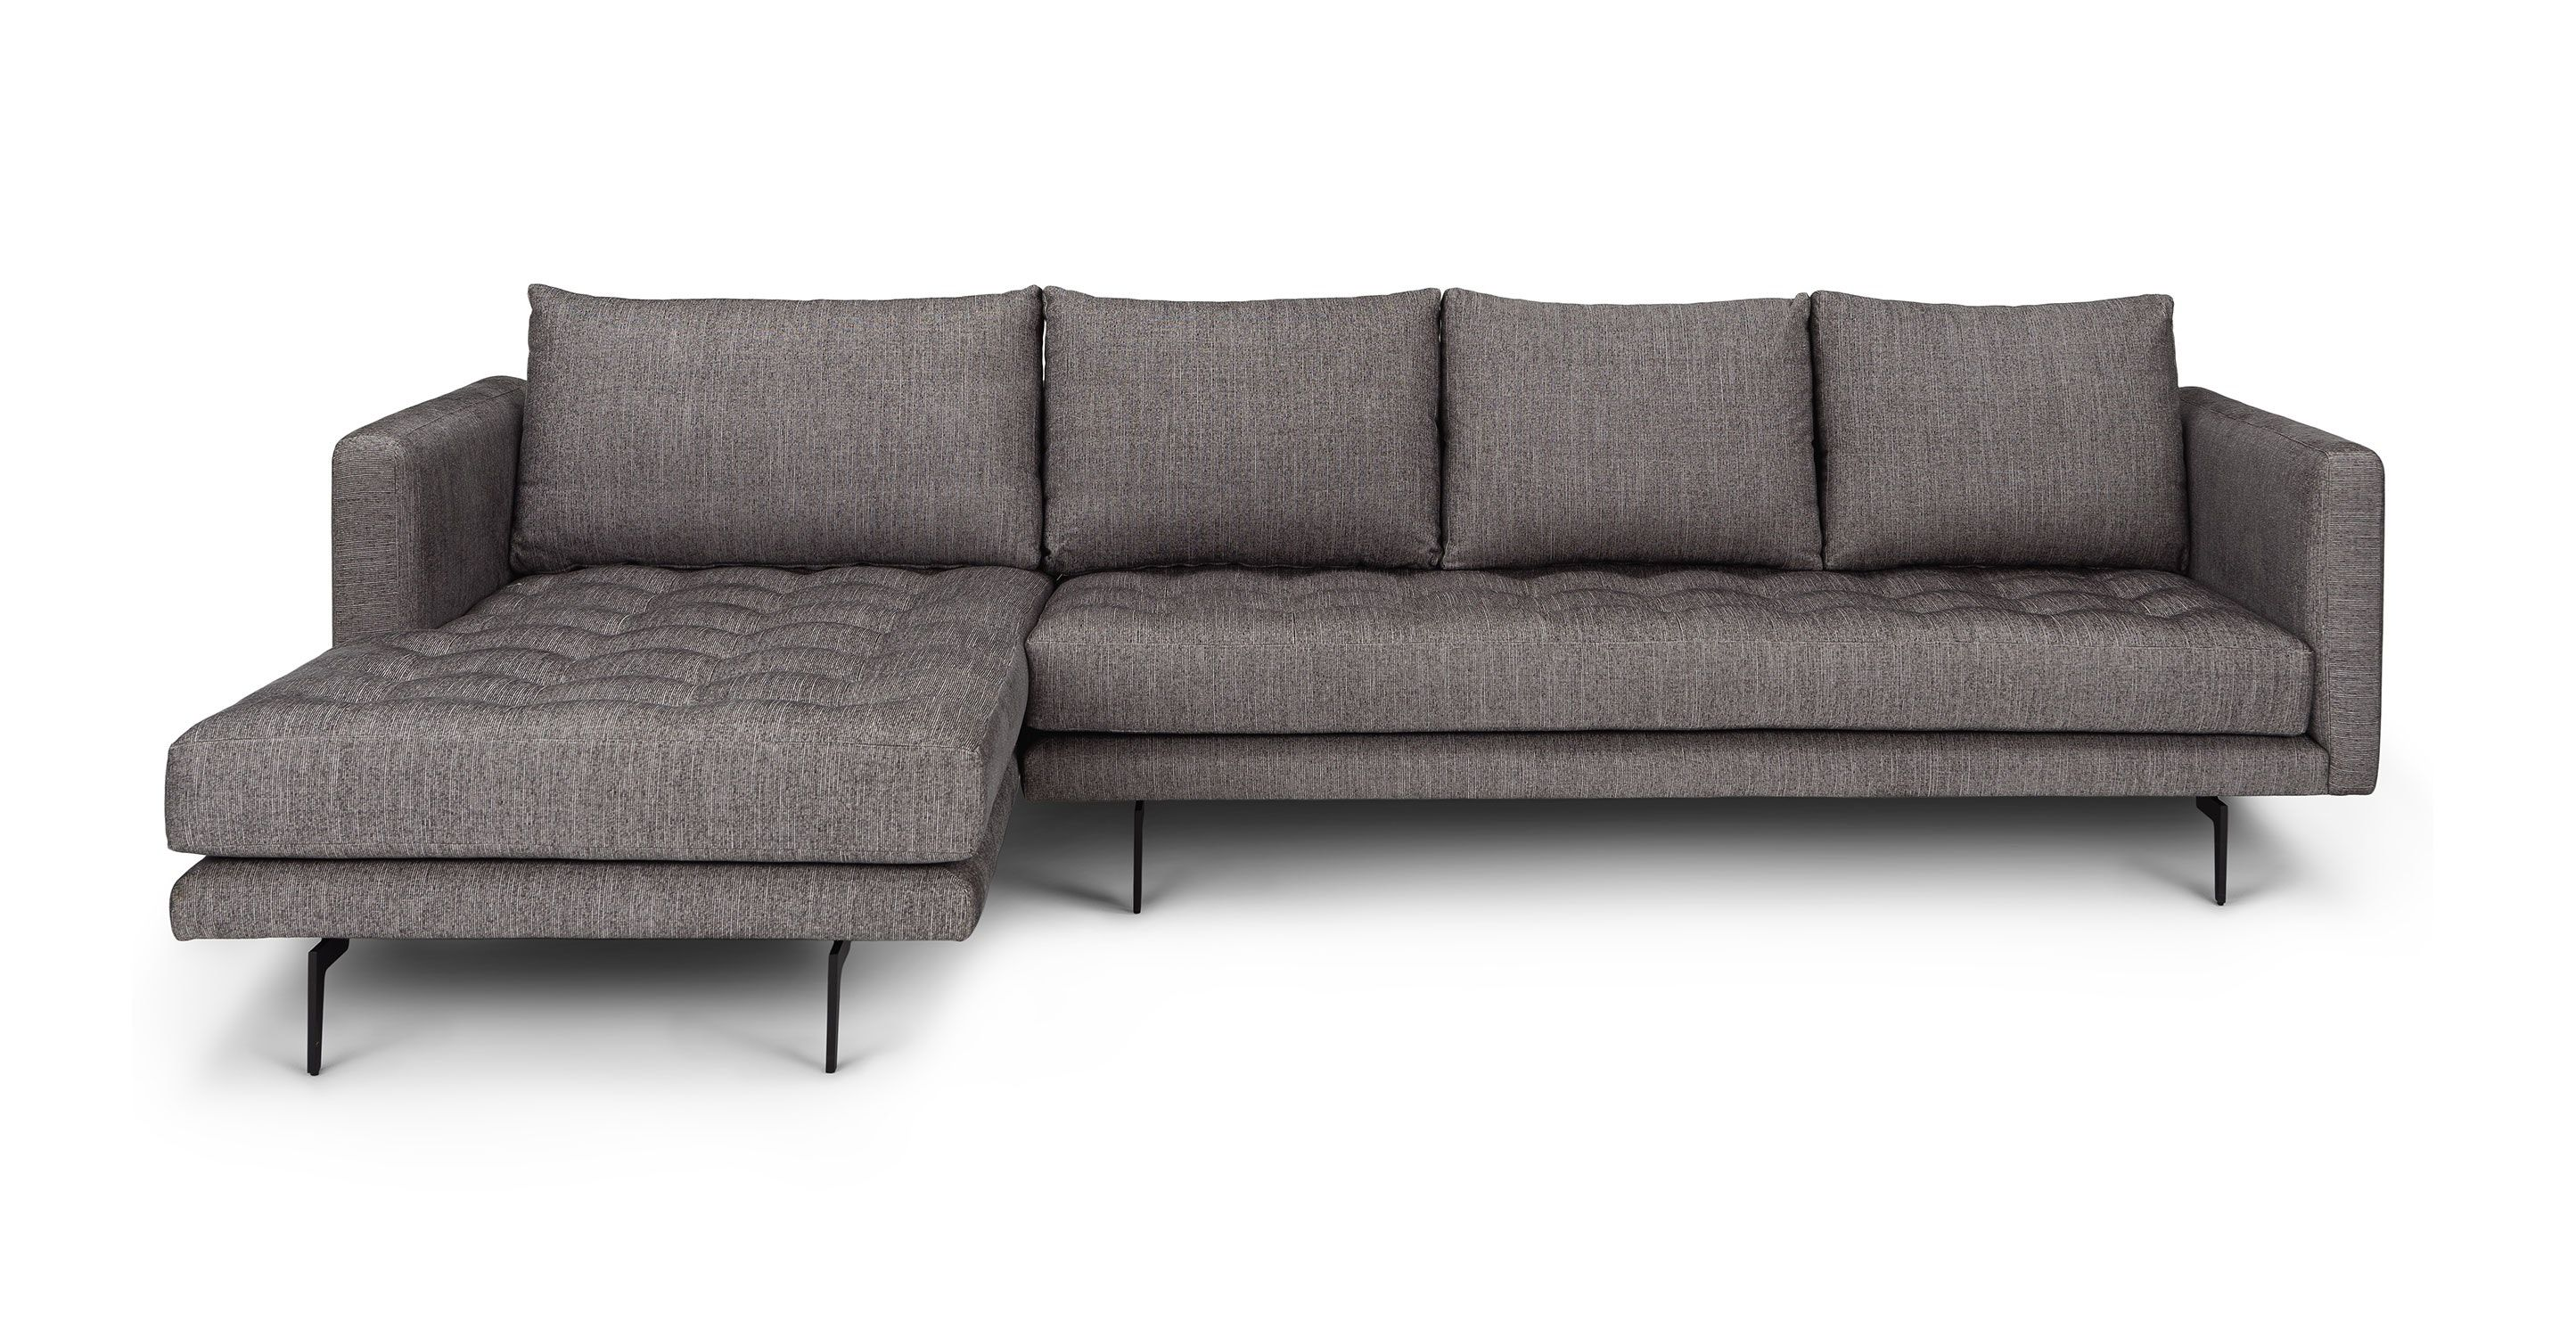 Parker Black Pepper Left Sectional Sectionals Article Modern Mid Century And Scandinavian Mid Century Modern Sectional Sofa Sectional Contemporary Sofa